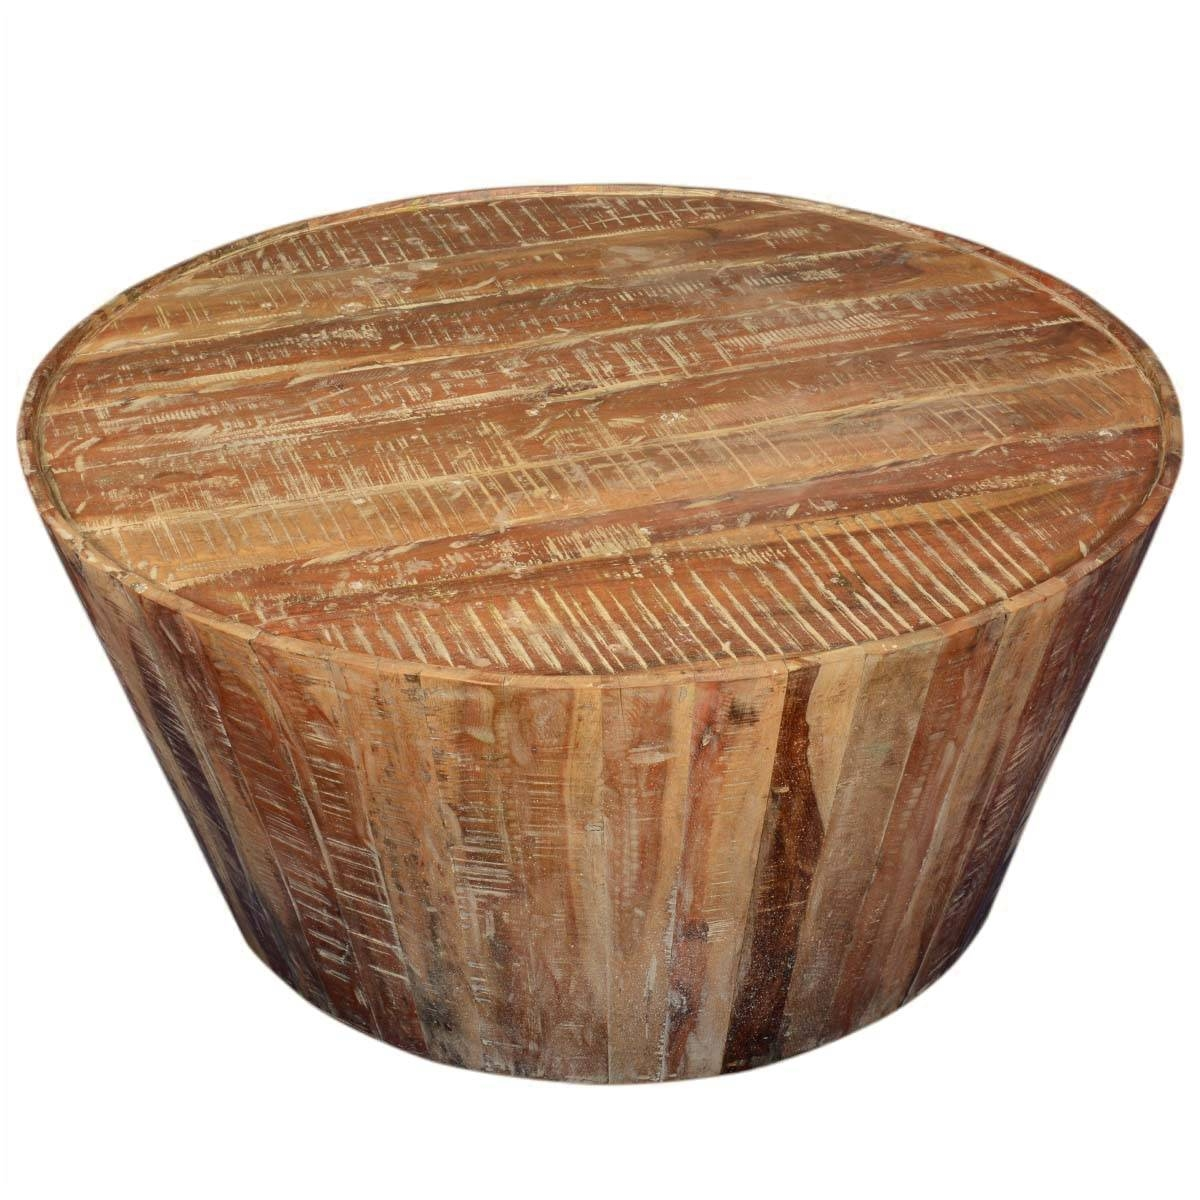 Rustic Coffee Tables for Large Wood Coffee Tables (Image 13 of 15)